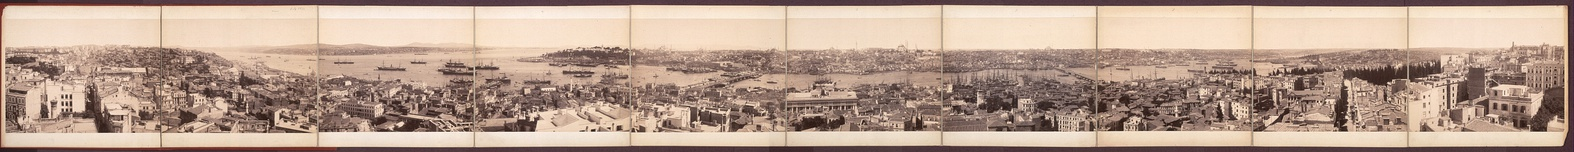 A panoramic view of the Ottoman era city from Galata Tower in the 19th century (image with notes)